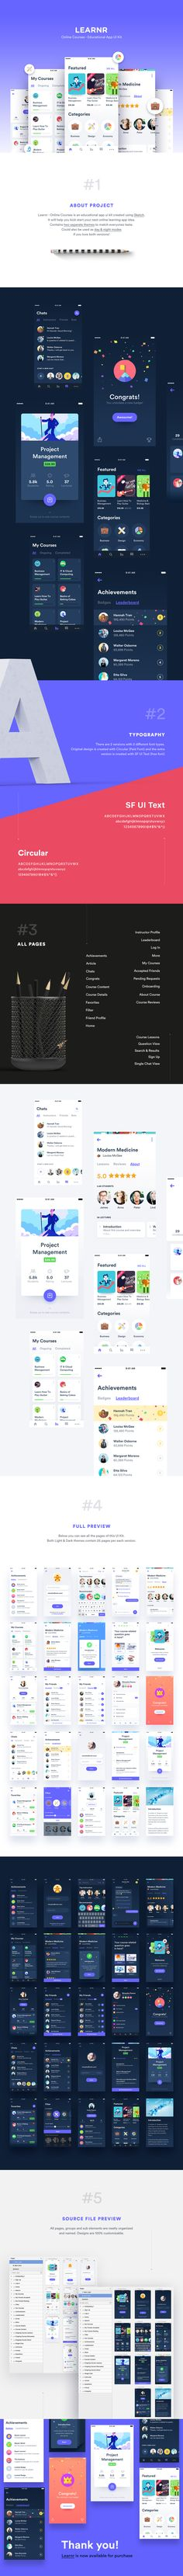 Learnr is an online courses educational app ui kit designed using sketch app software.